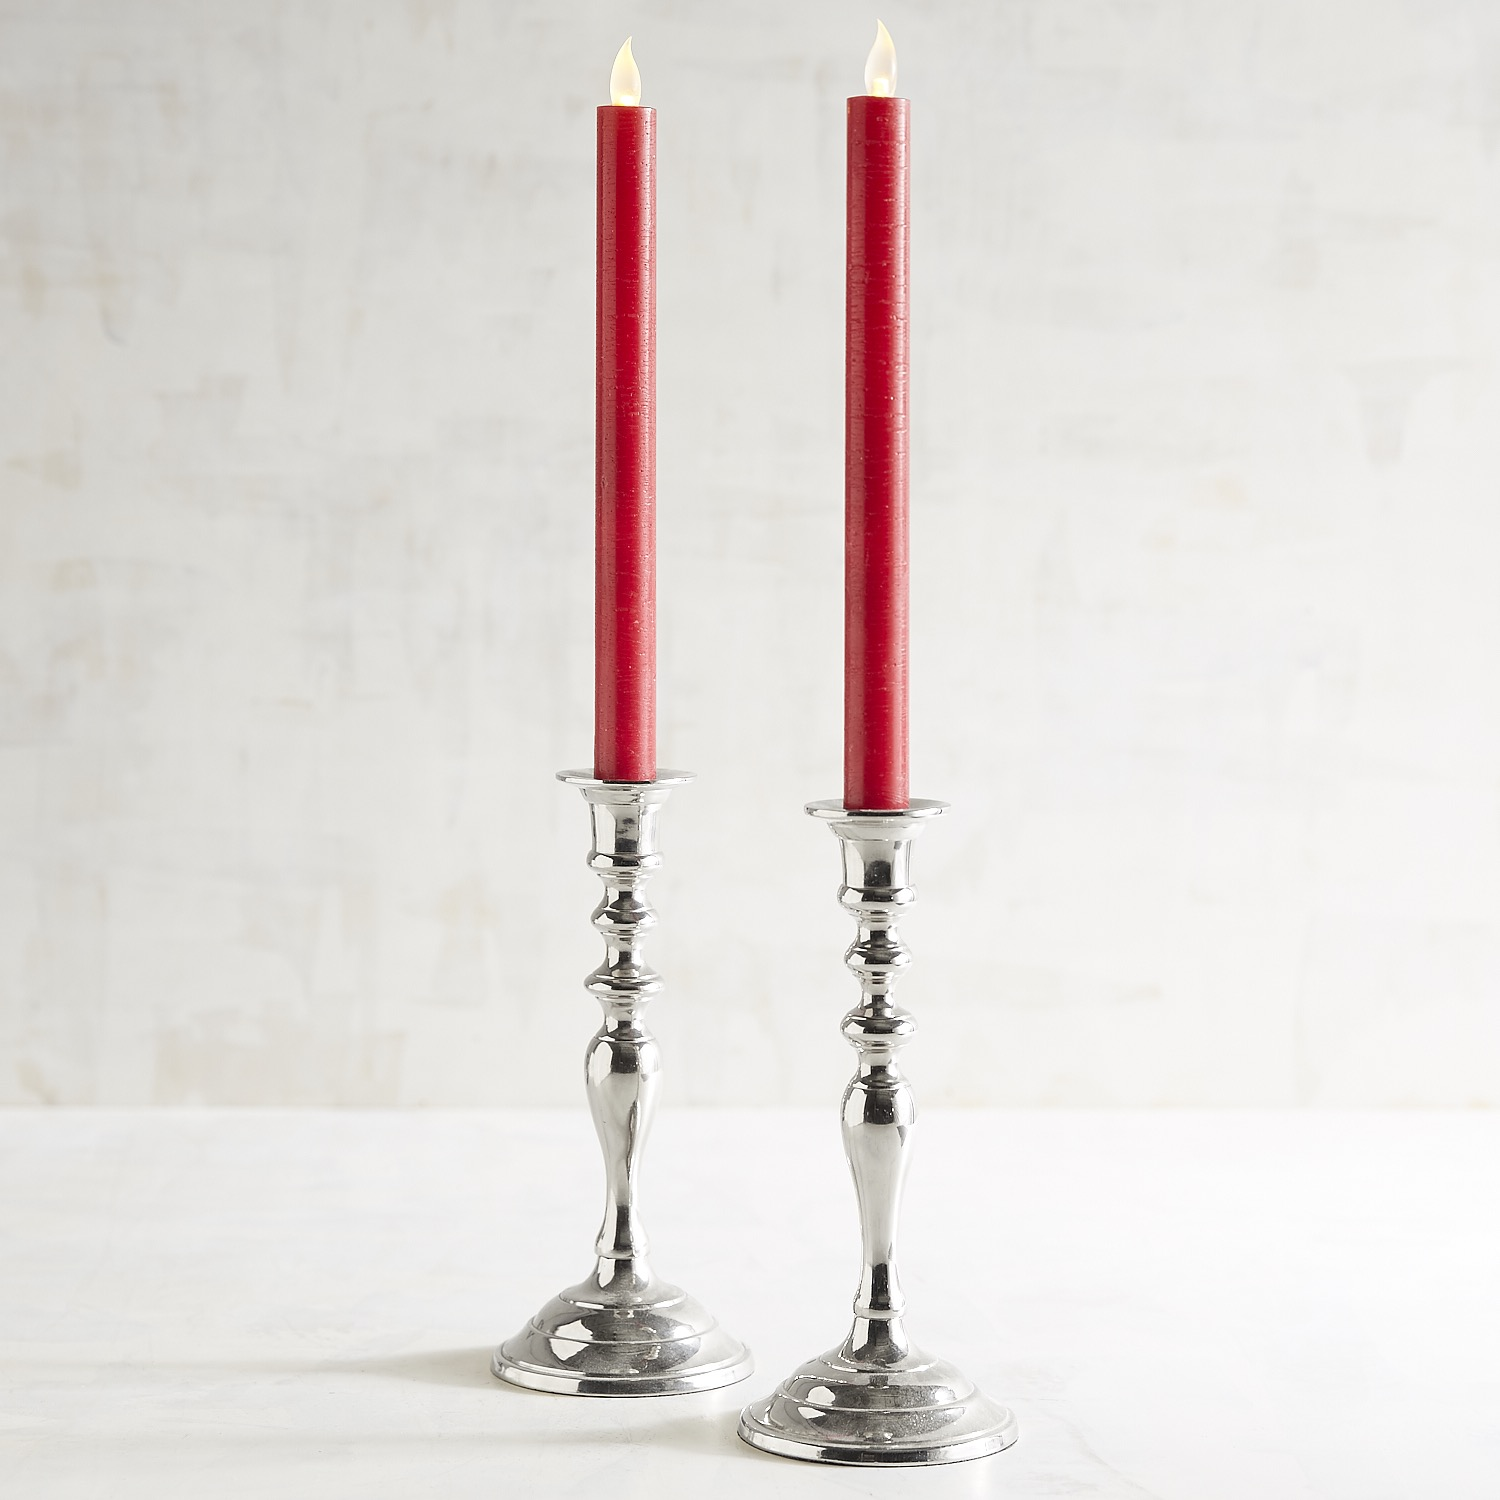 Distressed Red LED Taper Candle Set